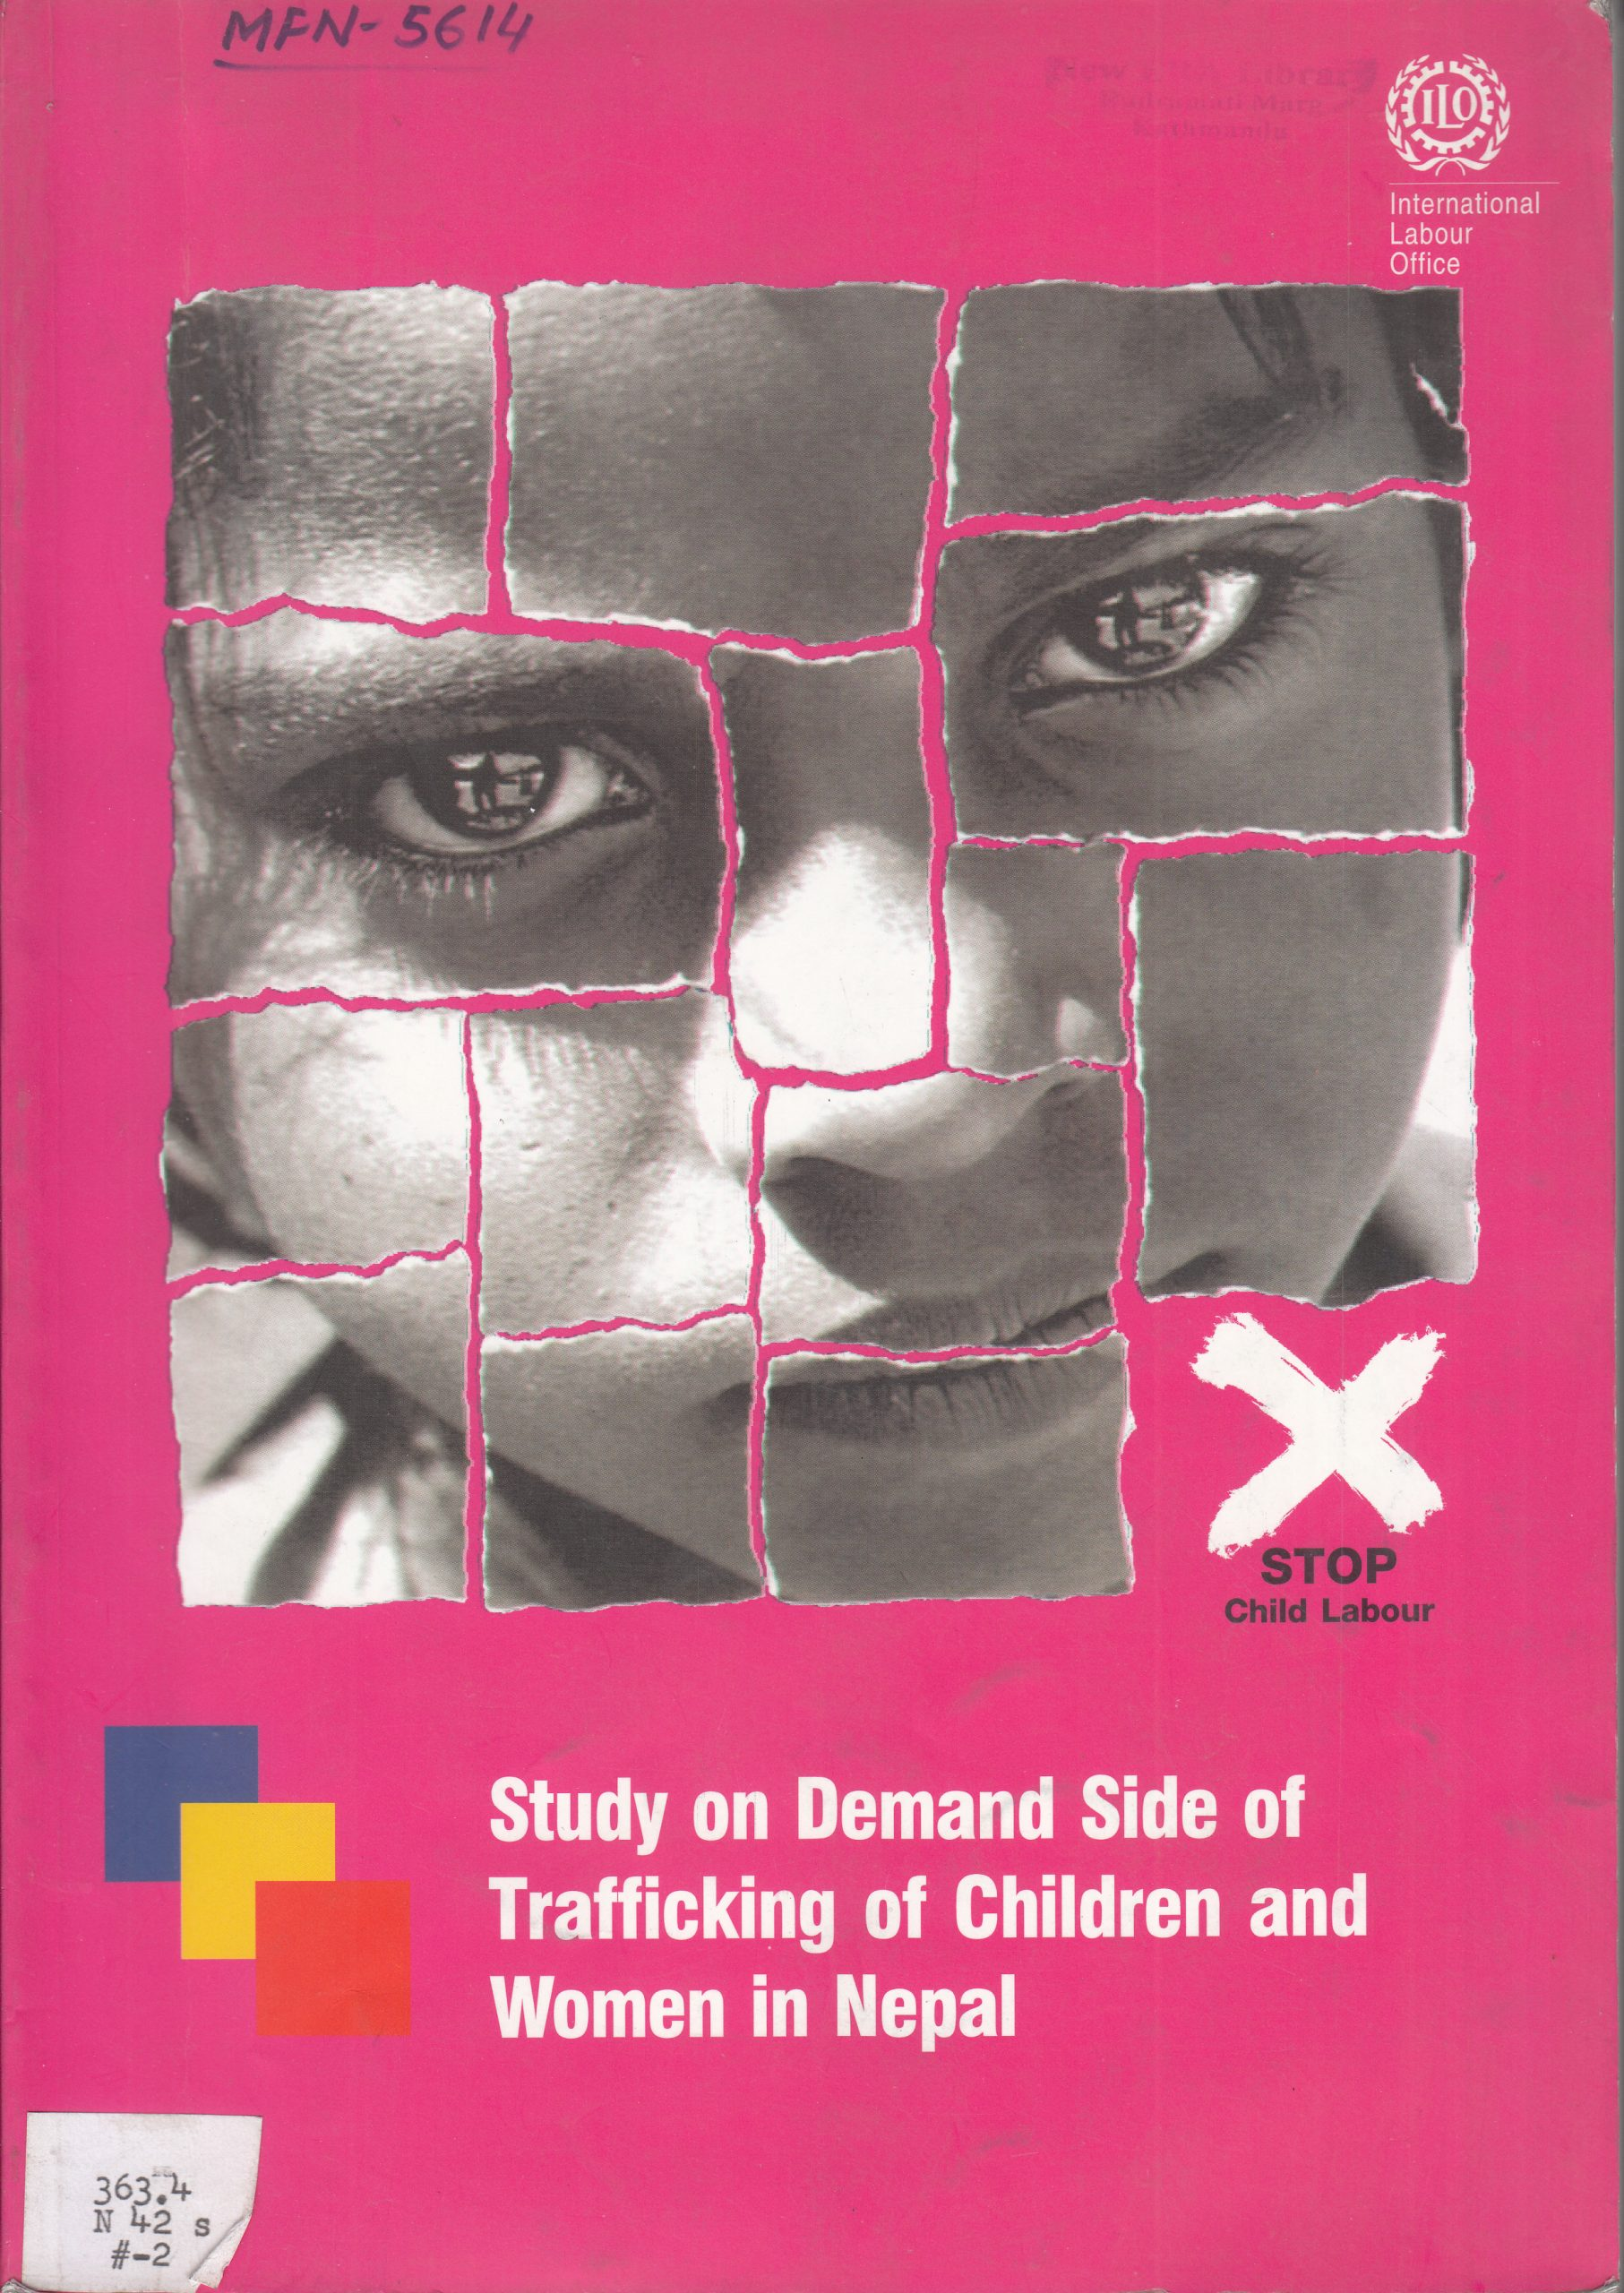 Study on Demand Side of Trafficking of Children and Women in Nepal